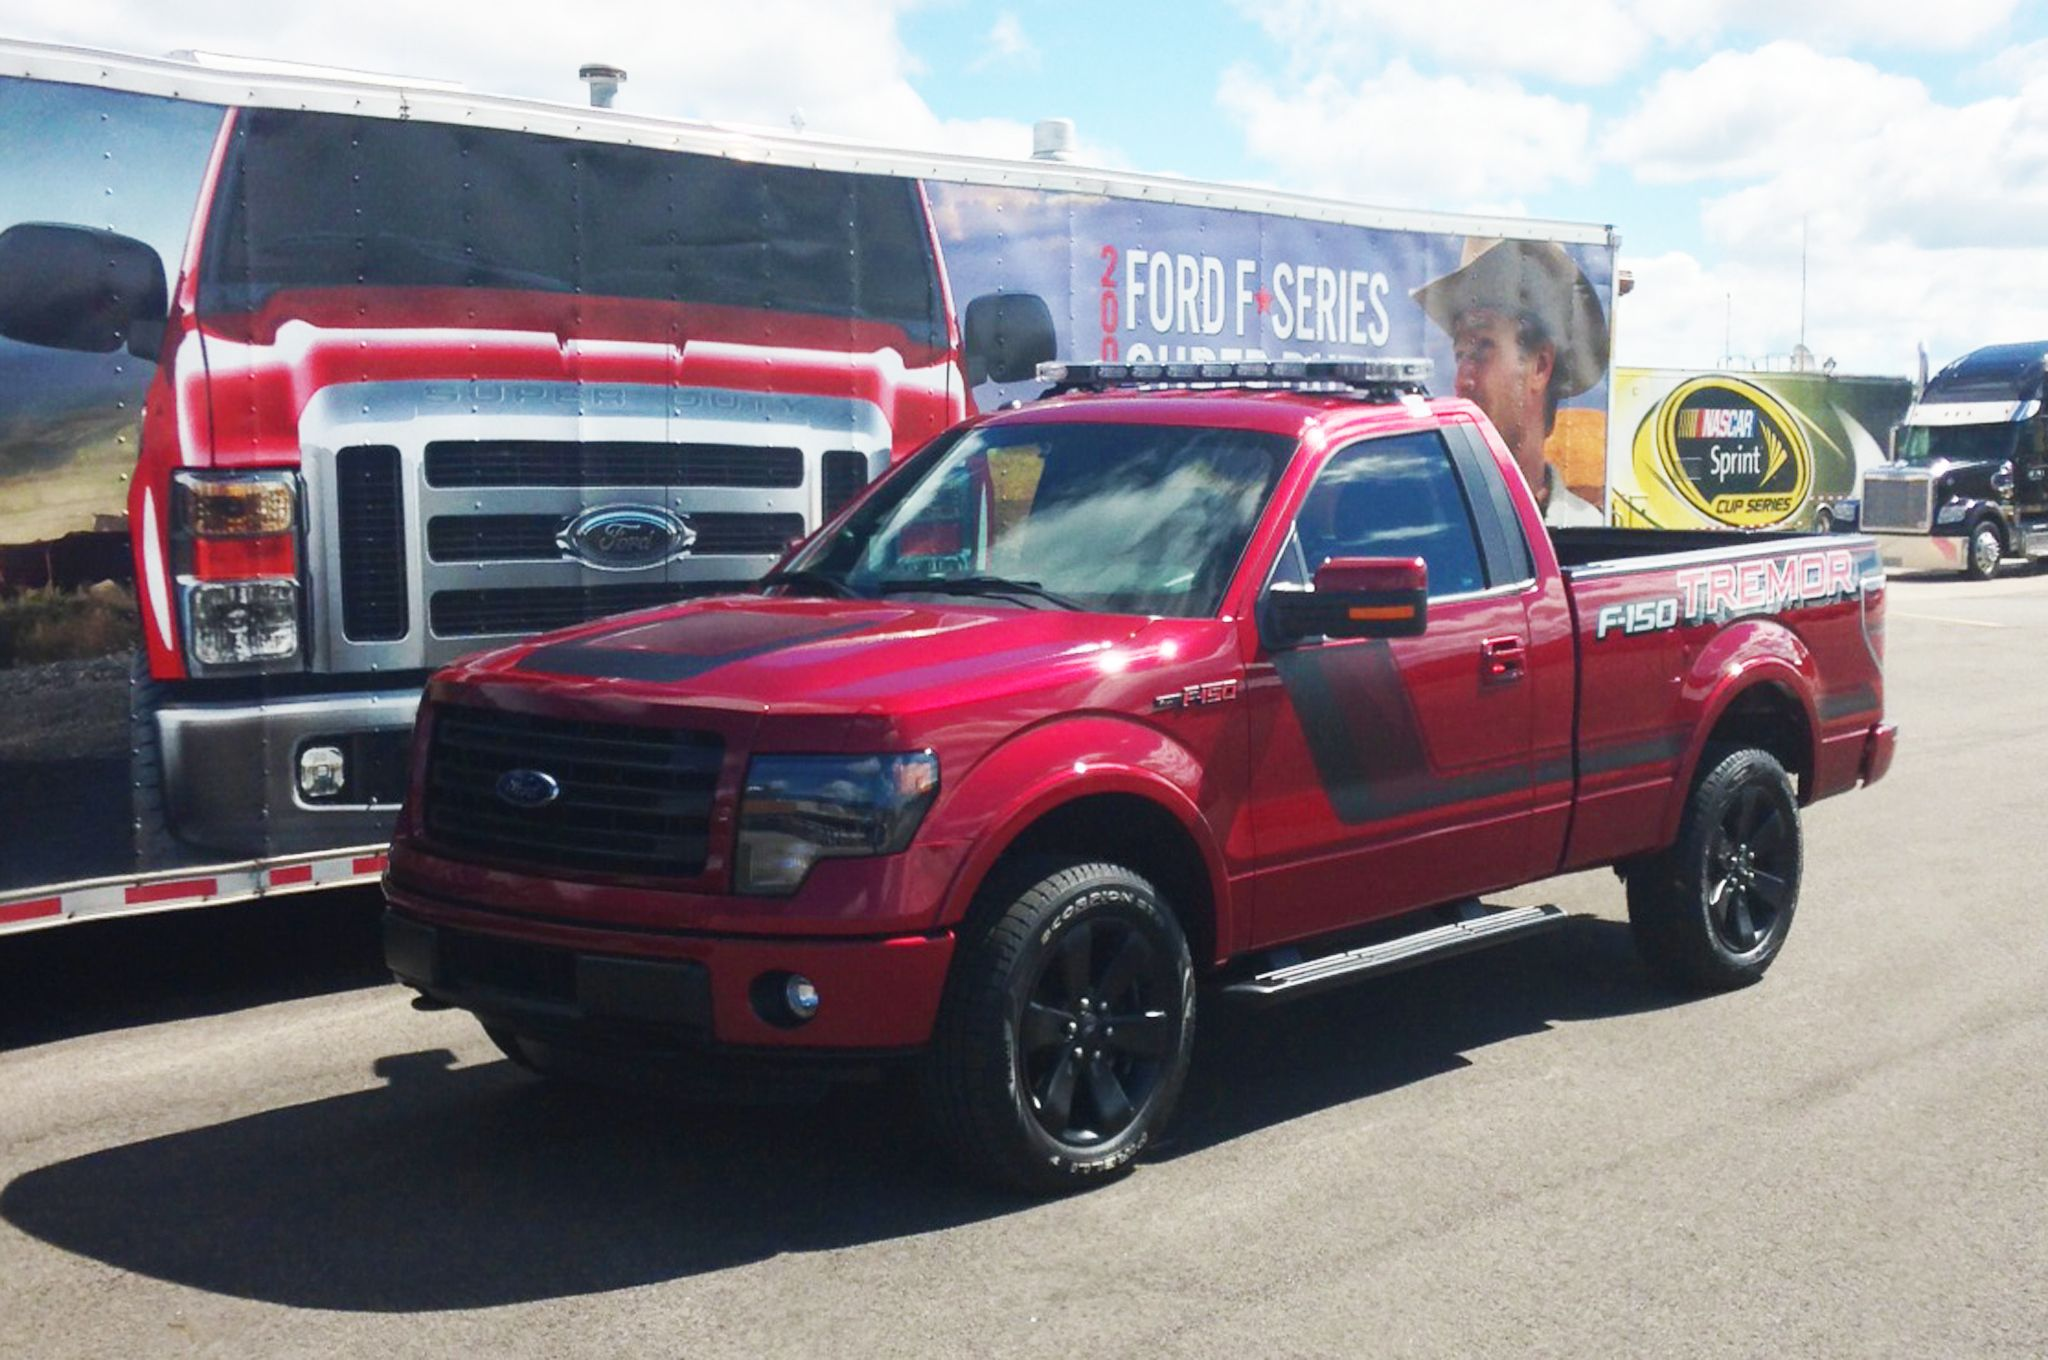 2014 ford f150 fx4 tremor ecoboost front view red